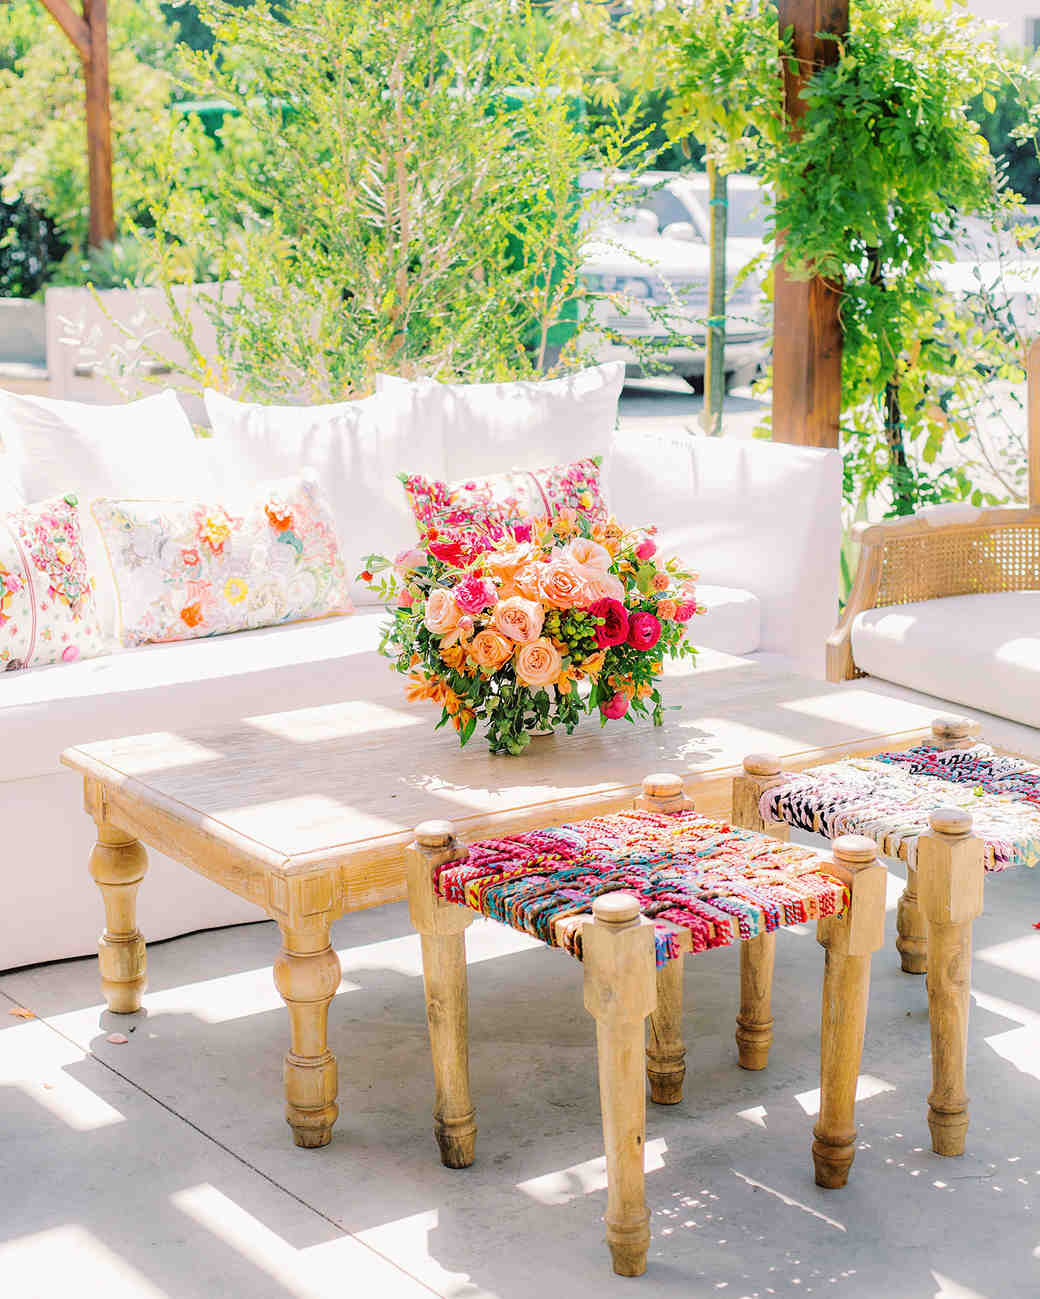 wedding lounge with neon pillows and centerpiece